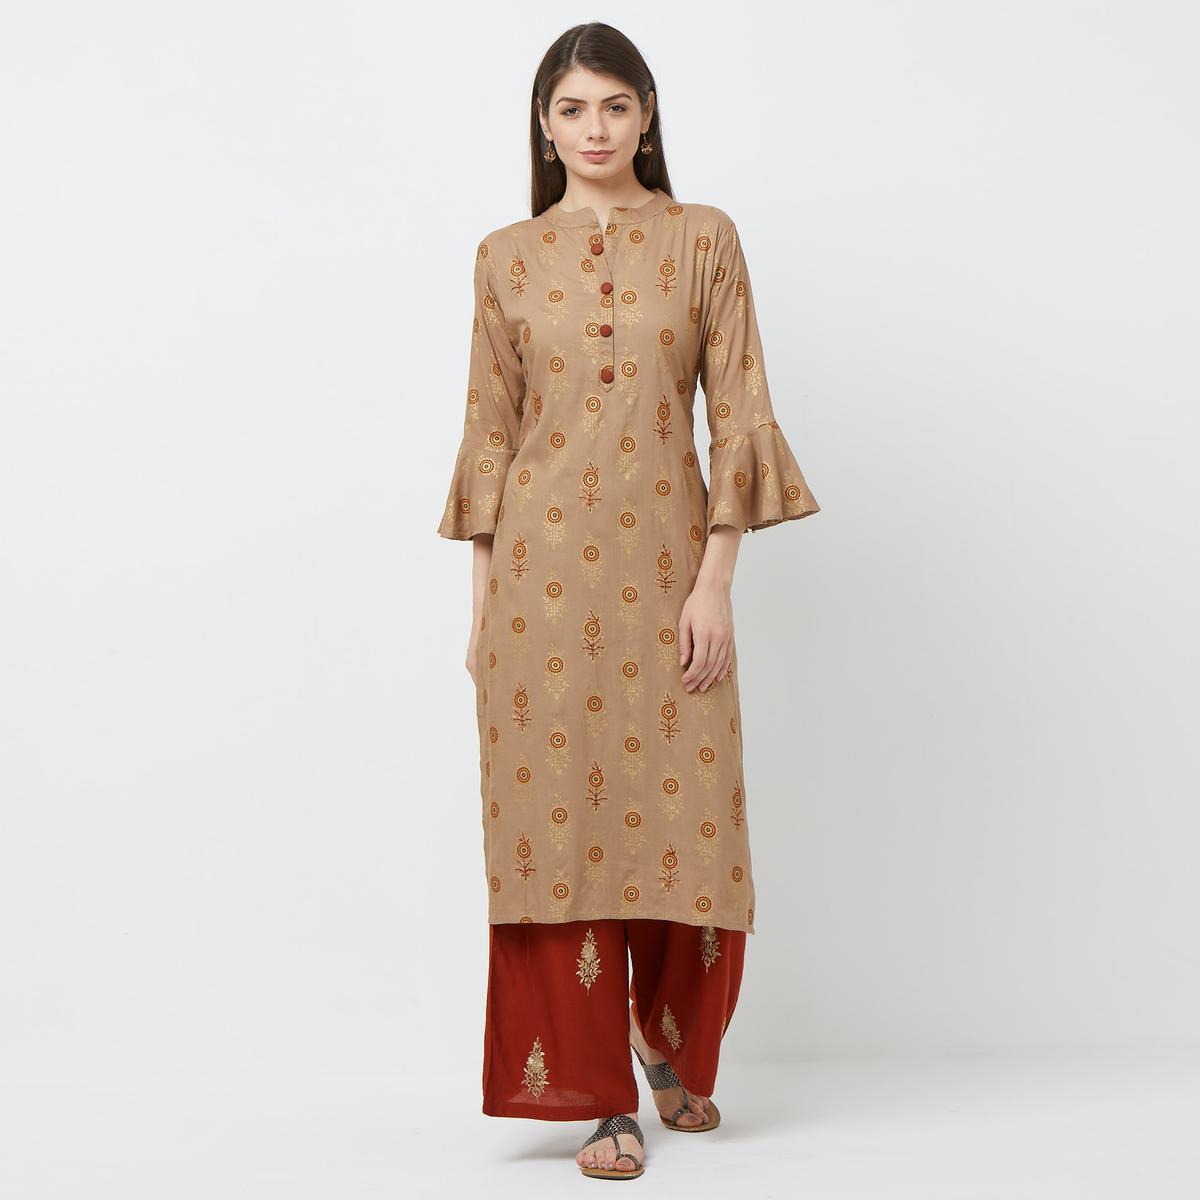 Dazzling Light Brown Colored Partywear Embroidered Cotton Kurti-Palazzo Set